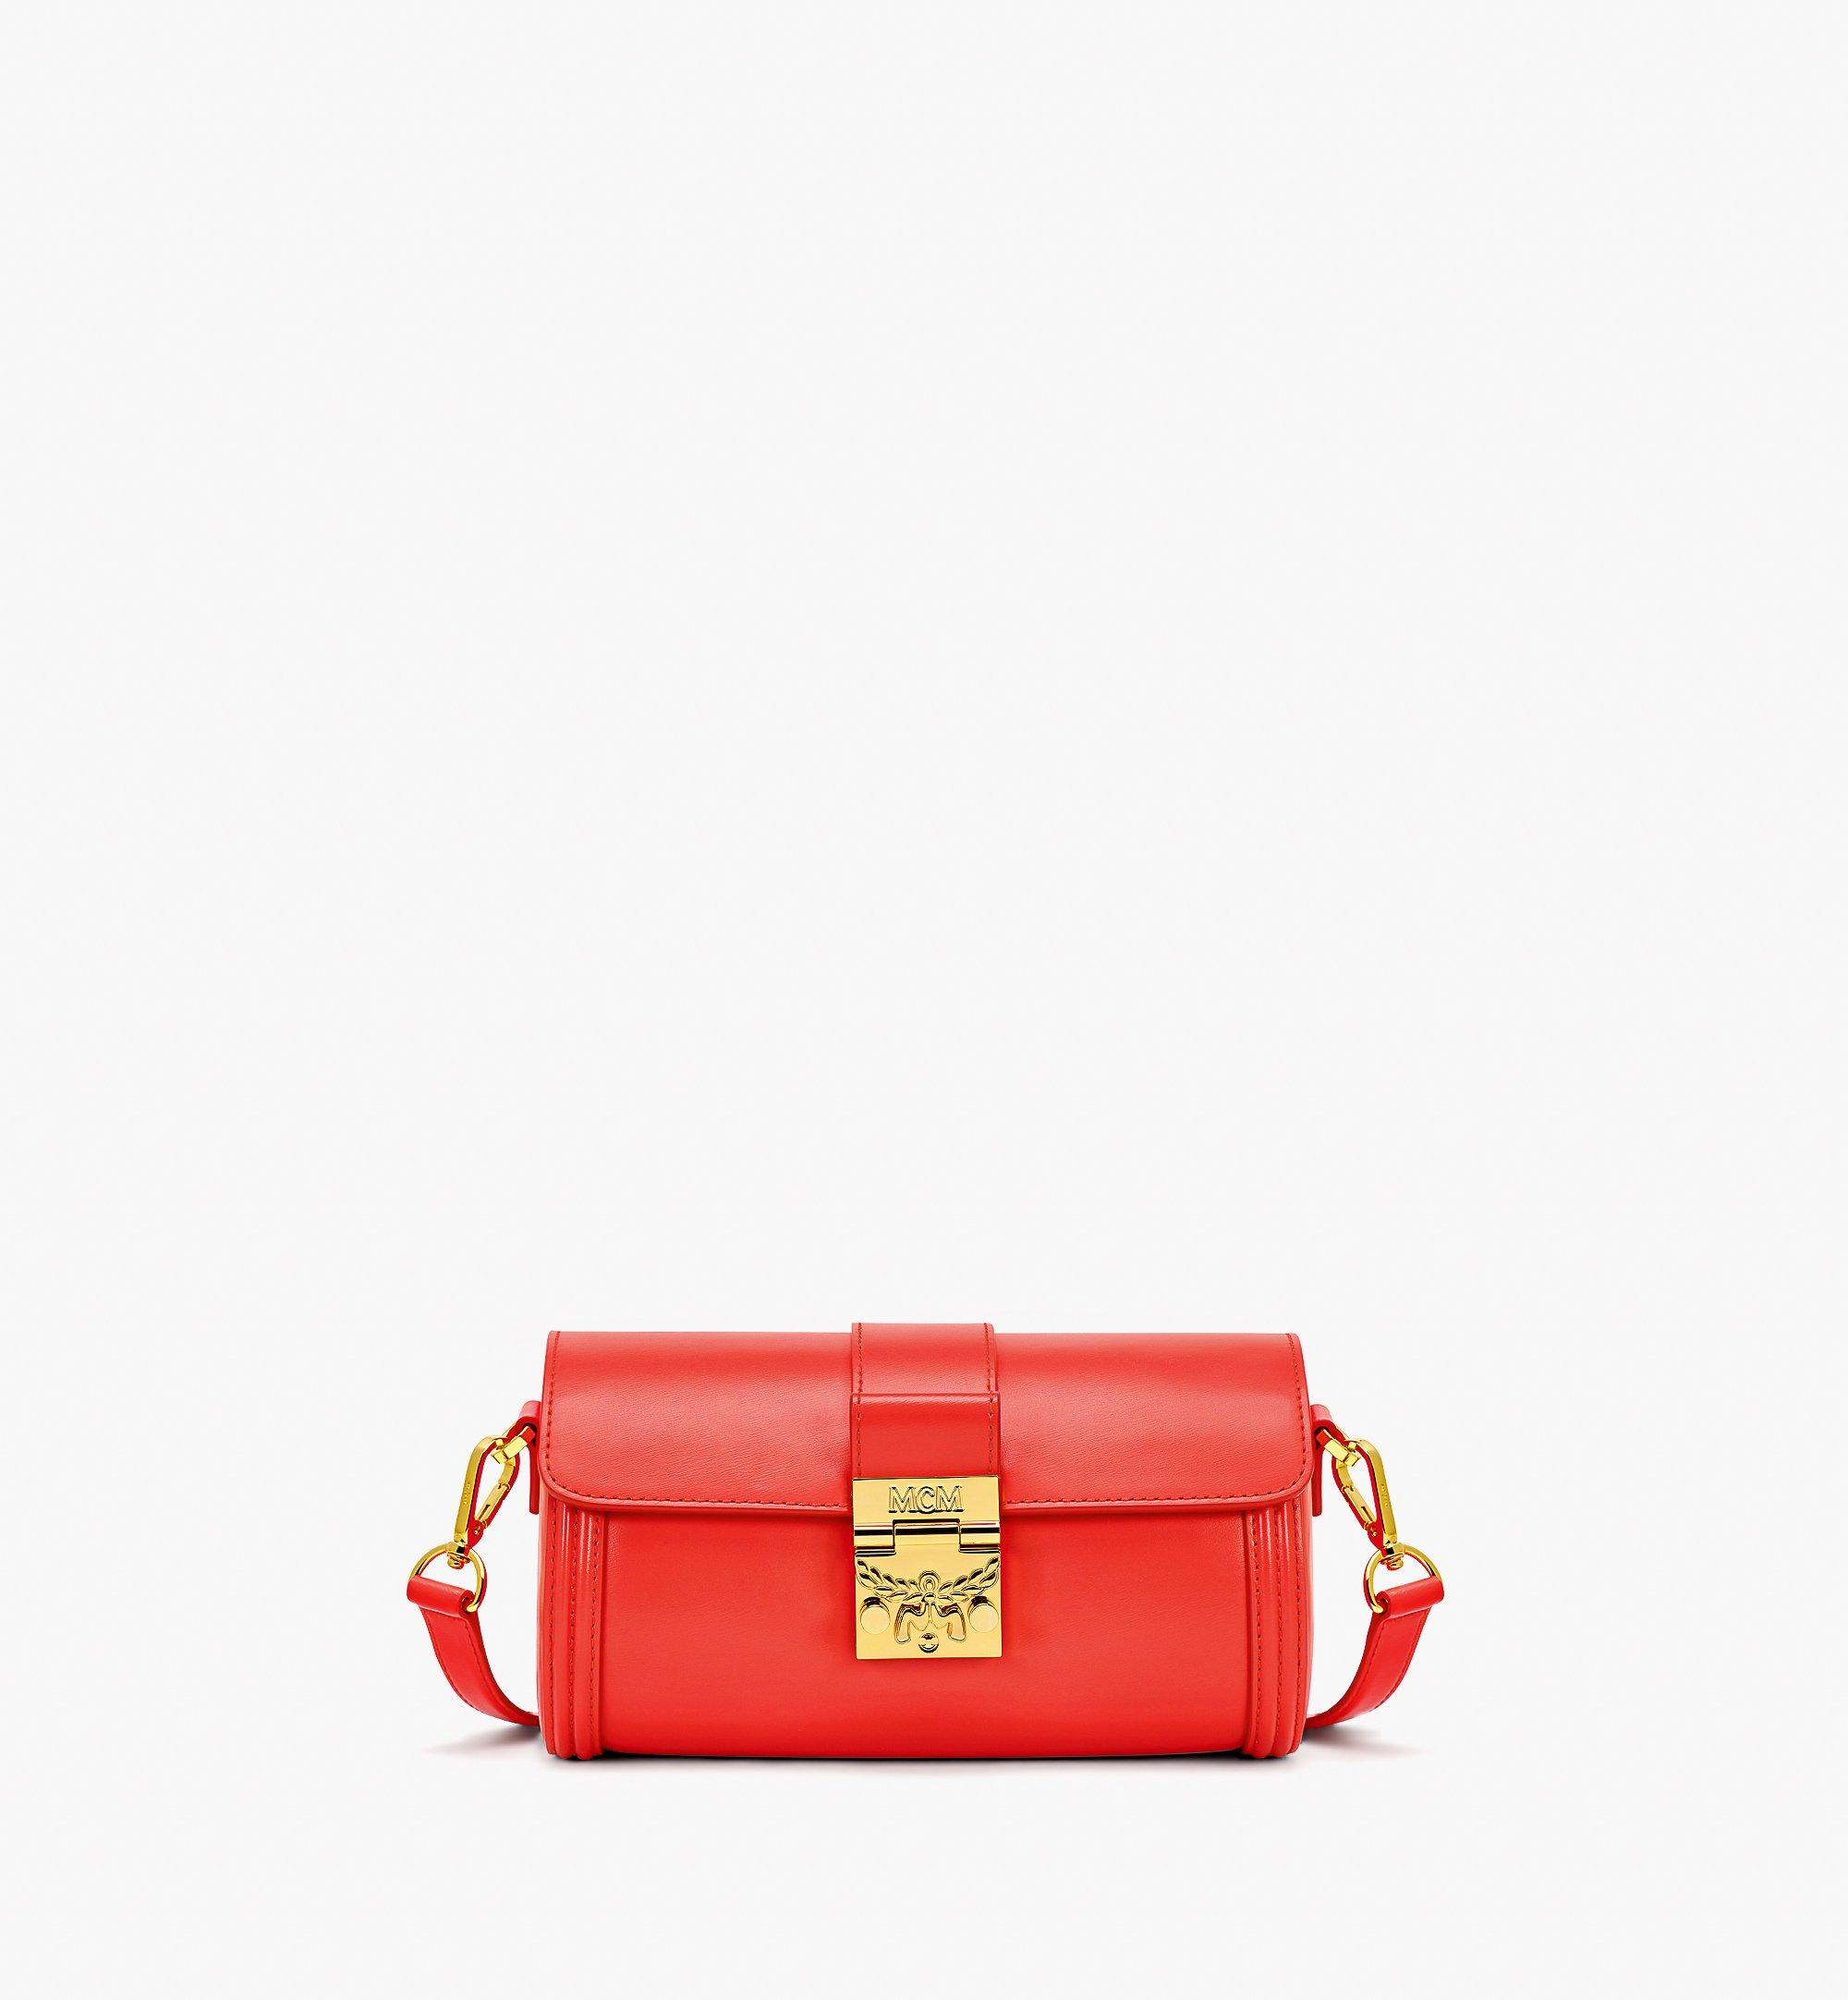 MCM Tracy Crossbody in Embossed Spanish Leather Red MWRBSXT02R8001 Alternate View 1